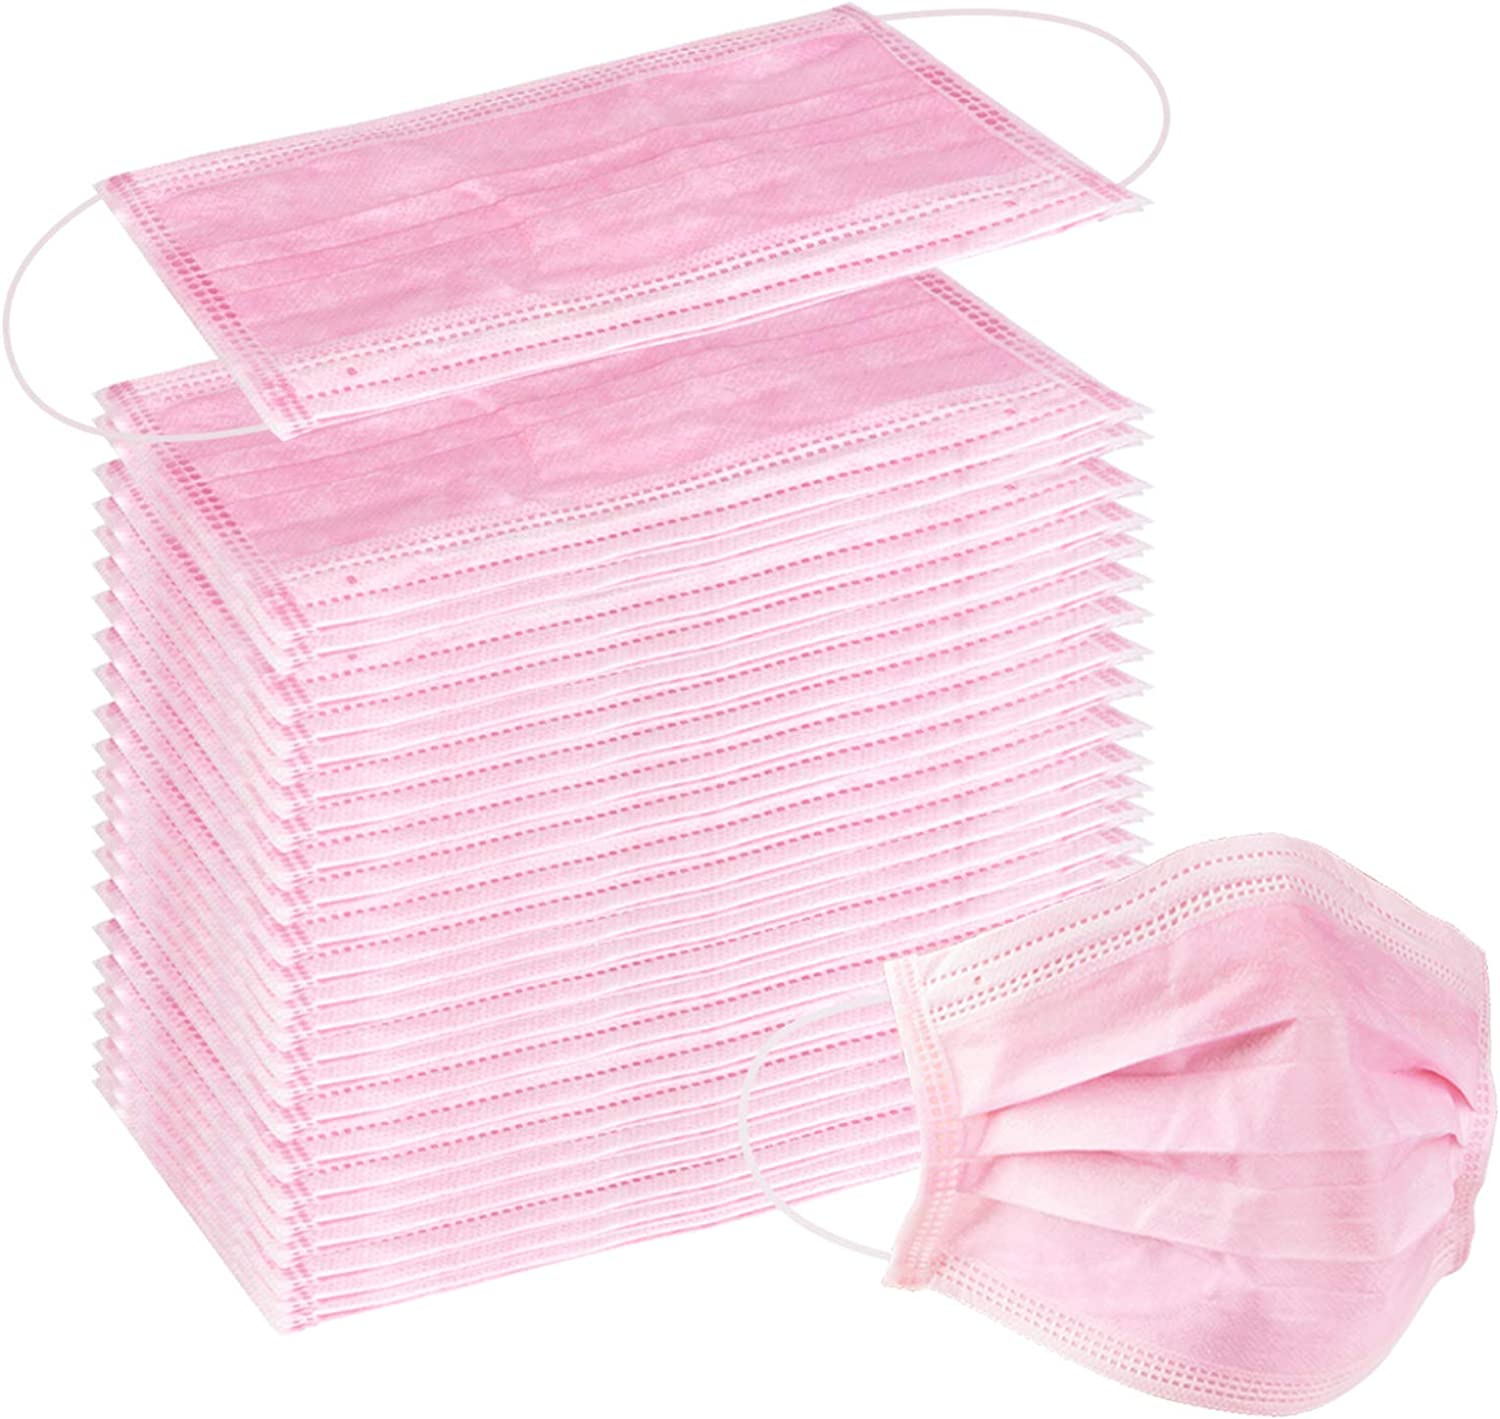 Amazon.com: Wecolor 100 Pcs Disposable 3 Ply Earloop Face Masks, Suitable  for Home, School, Office and Outdoors (Pink): Clothing